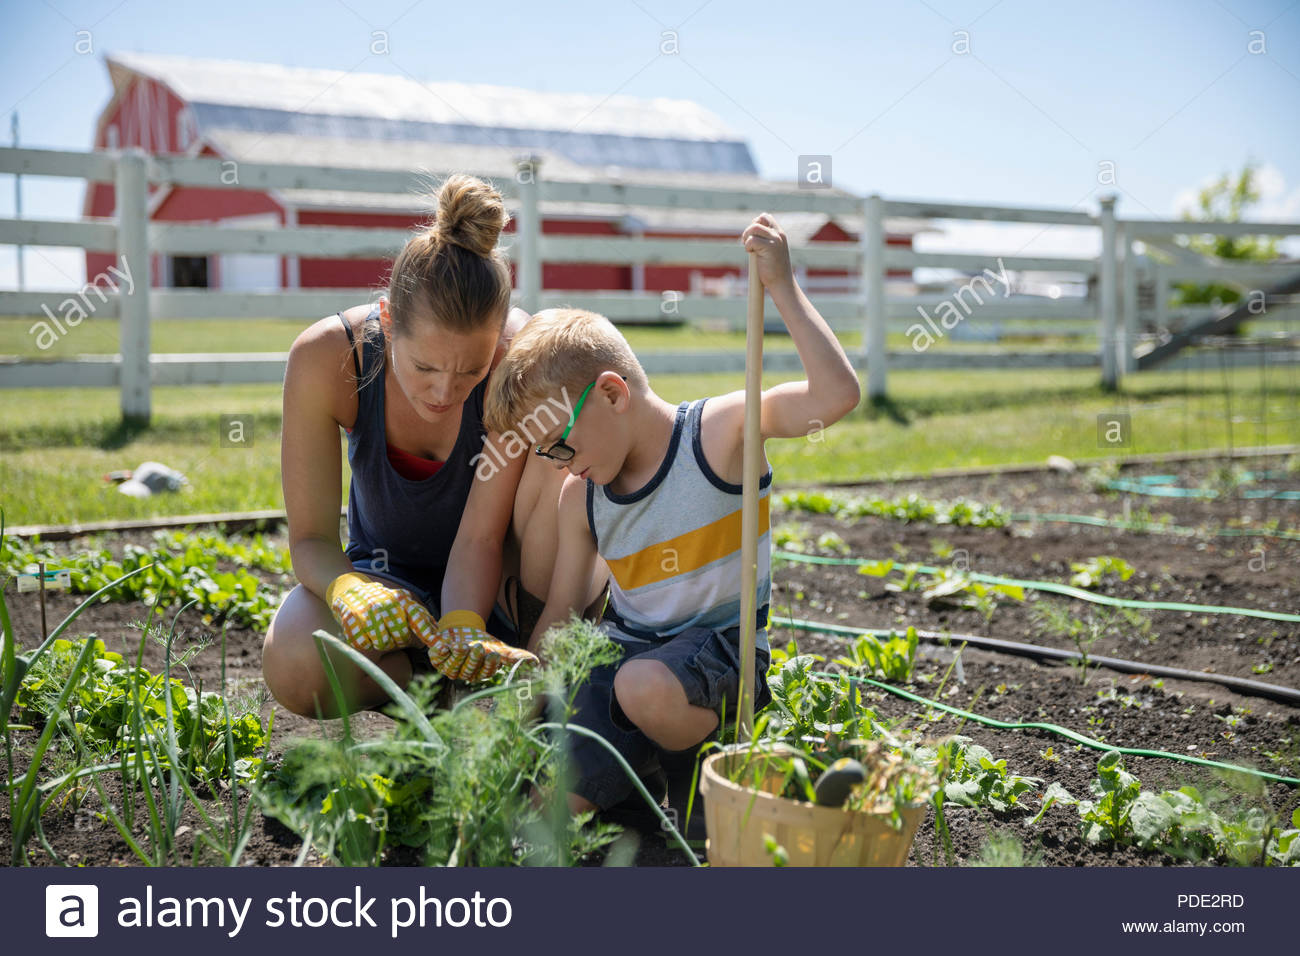 Mother and son gardening in sunny rural garden - Stock Image